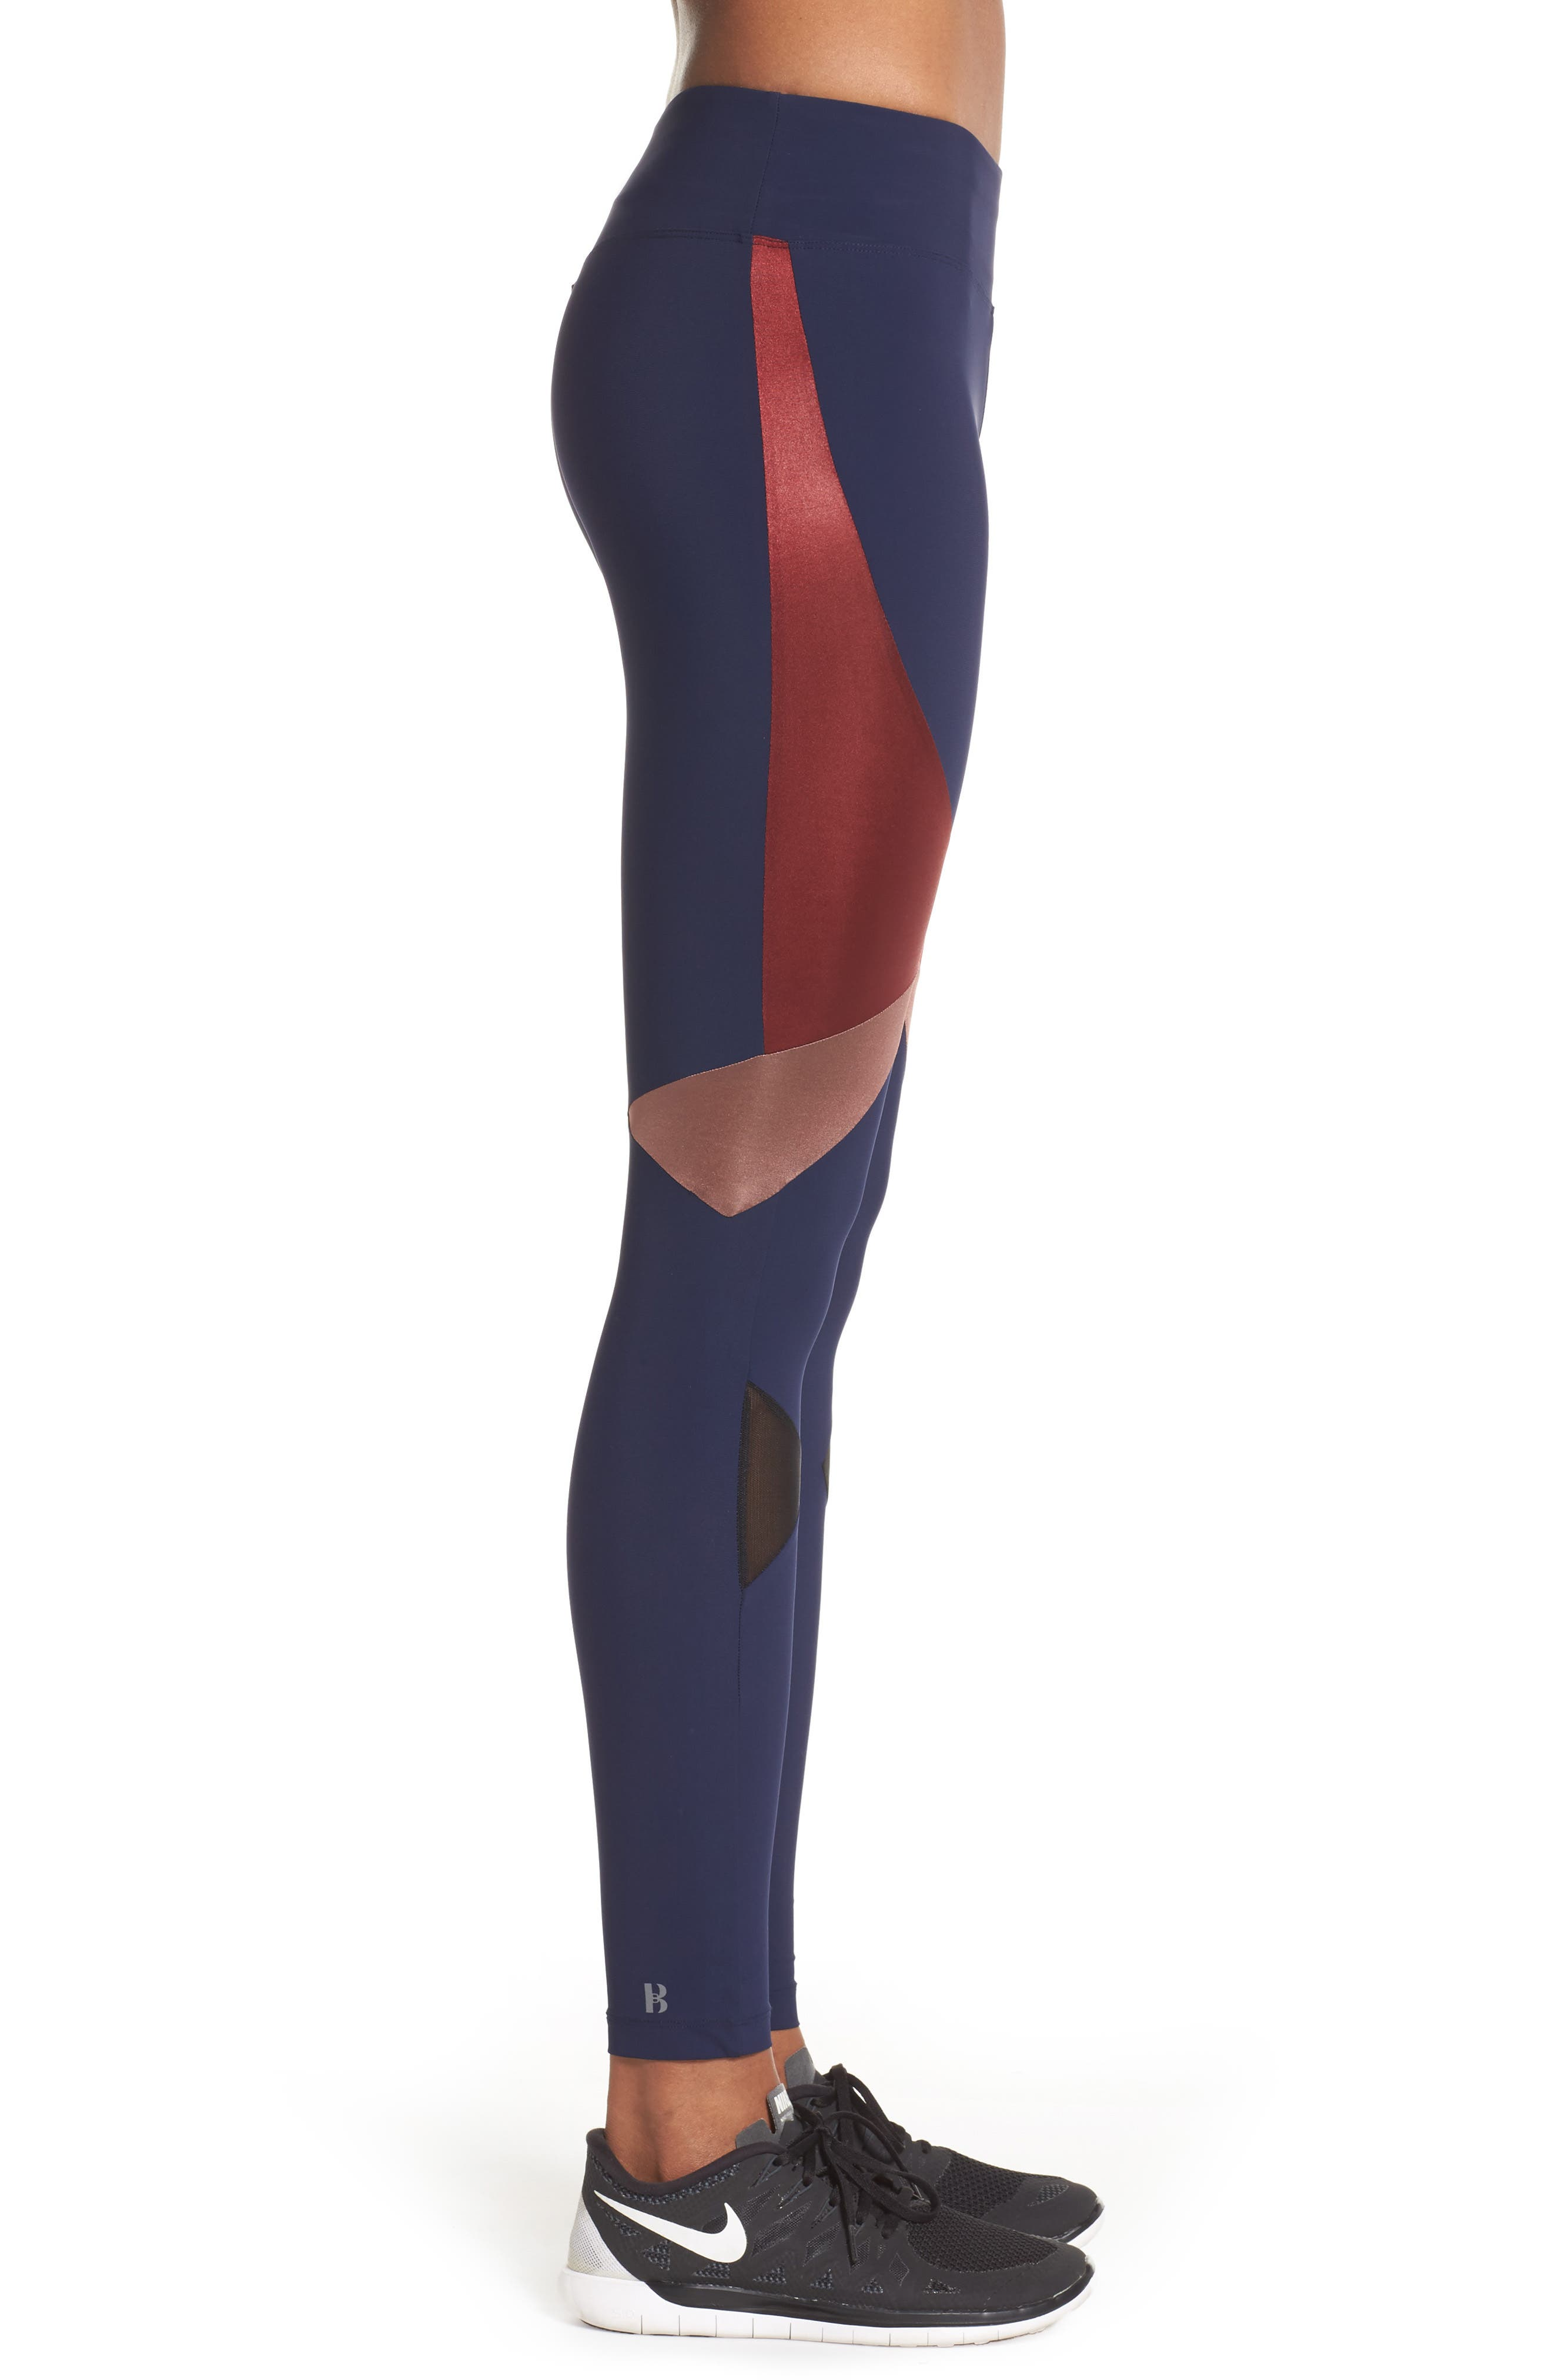 BoomBoom Athletica Compression Leggings,                             Alternate thumbnail 3, color,                             Navy/Oxblood/Rose Gold